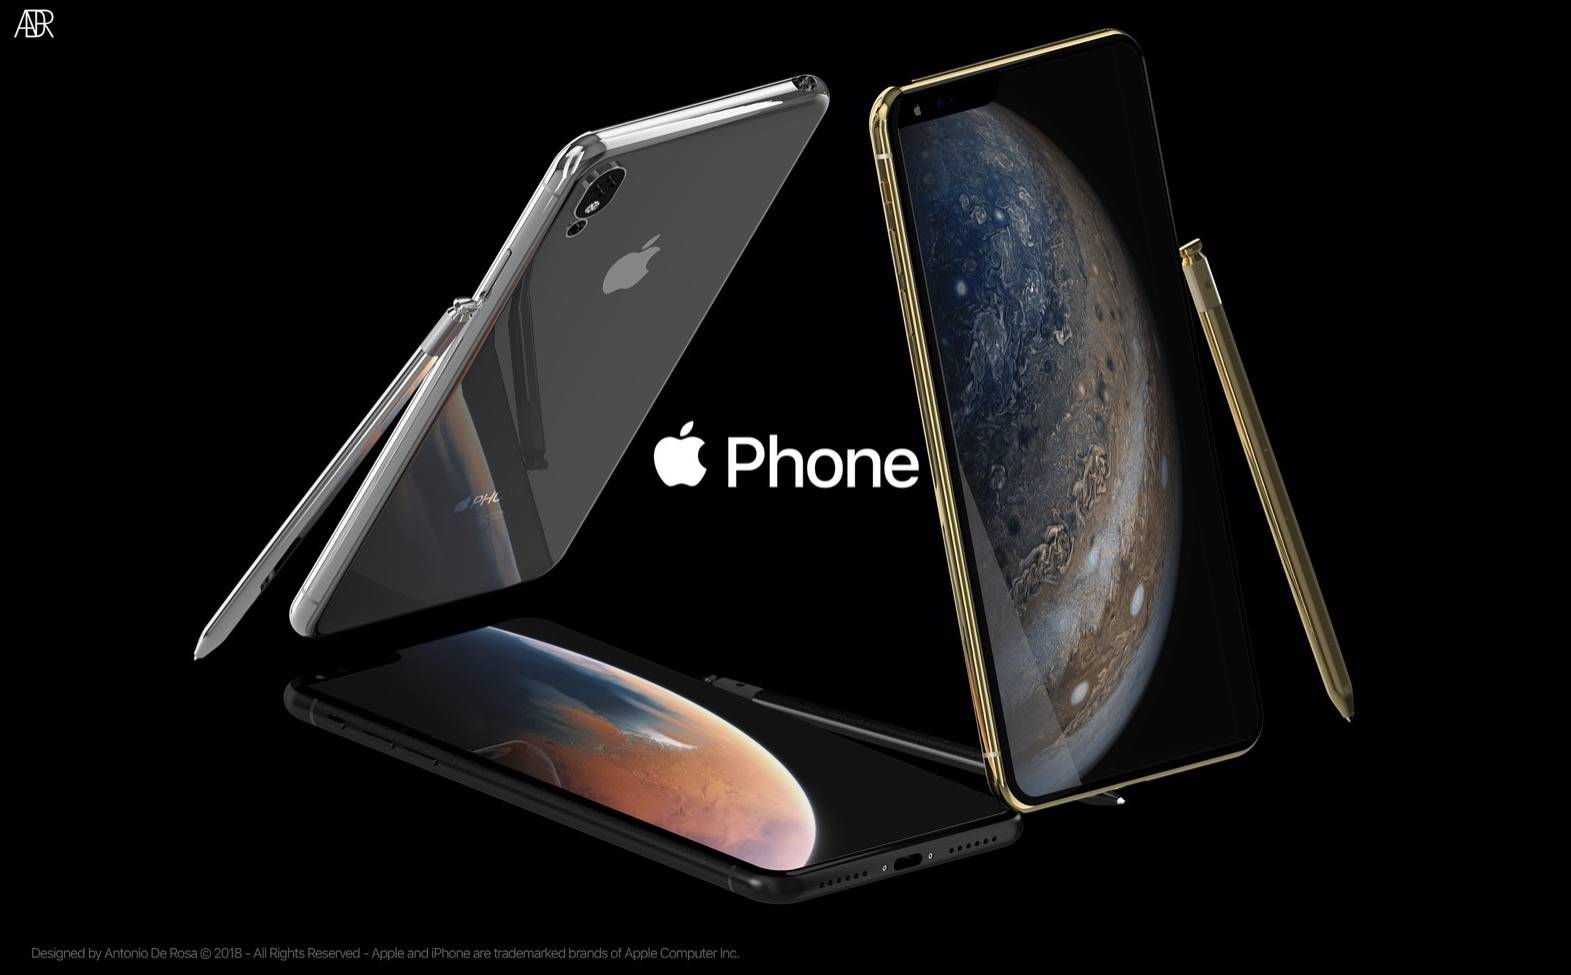 New Apple Iphone Concept Images For 2018 5